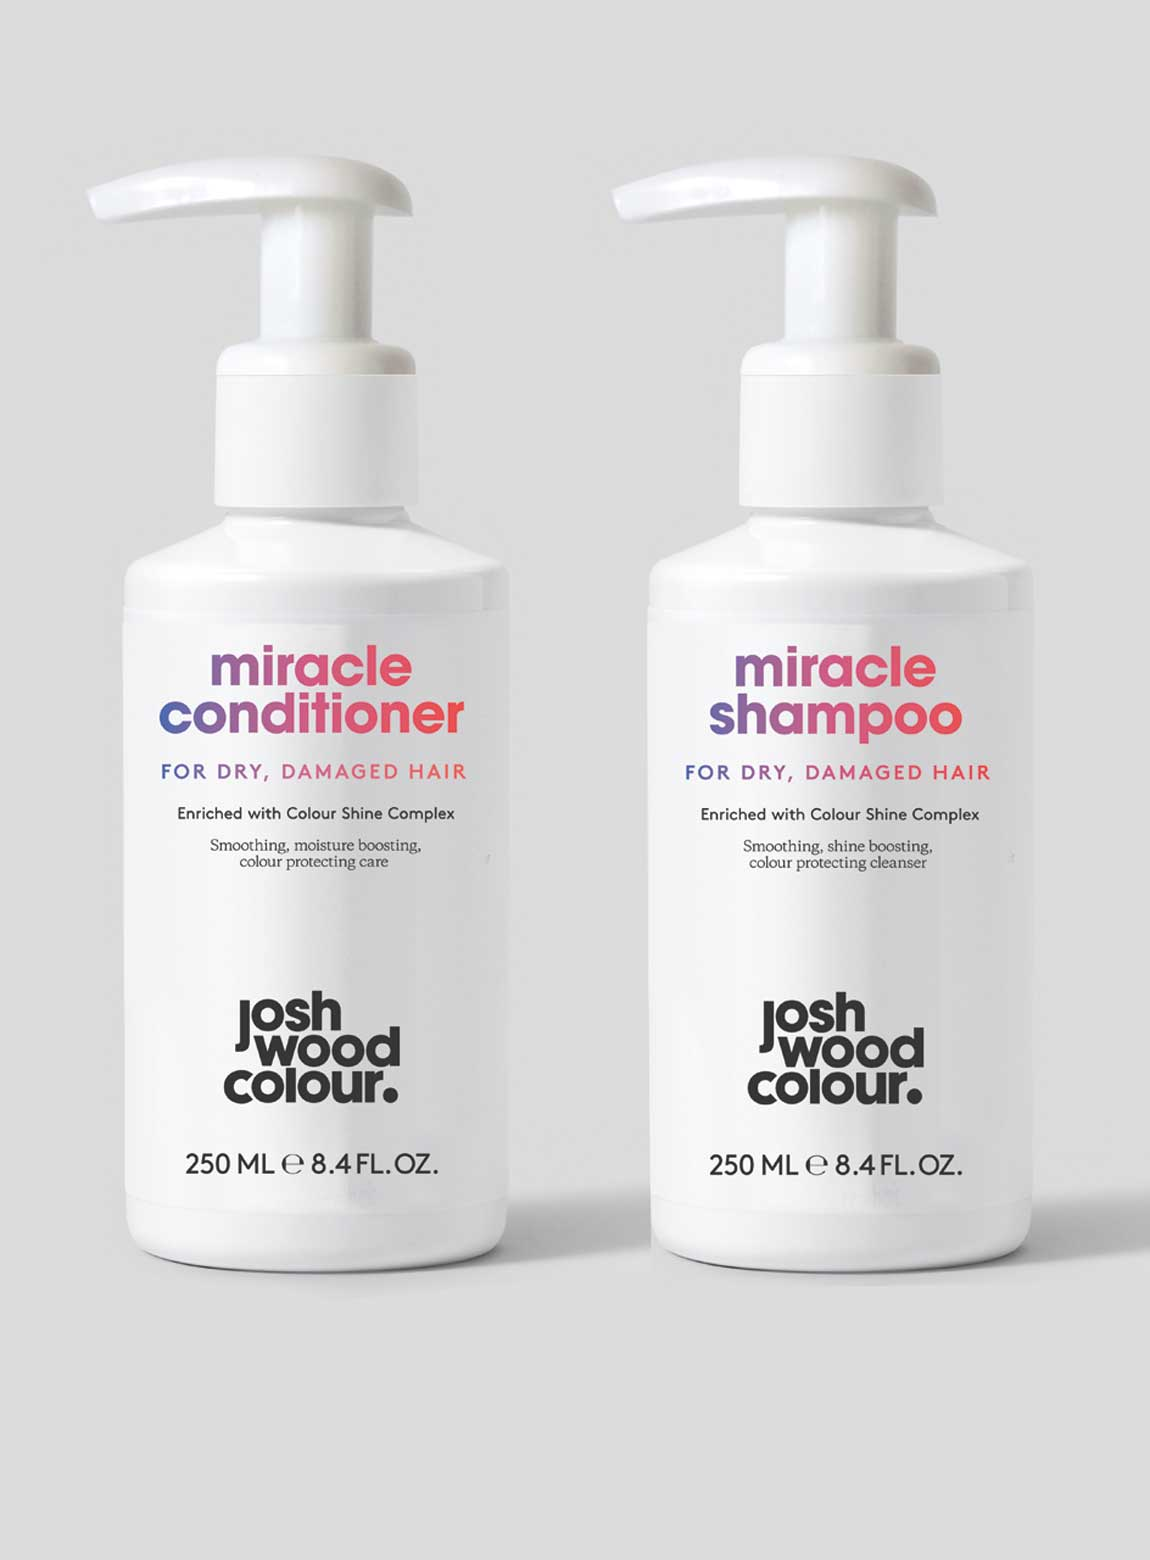 Miracle Shampoo and Conditioner for Dry, Damaged Hair